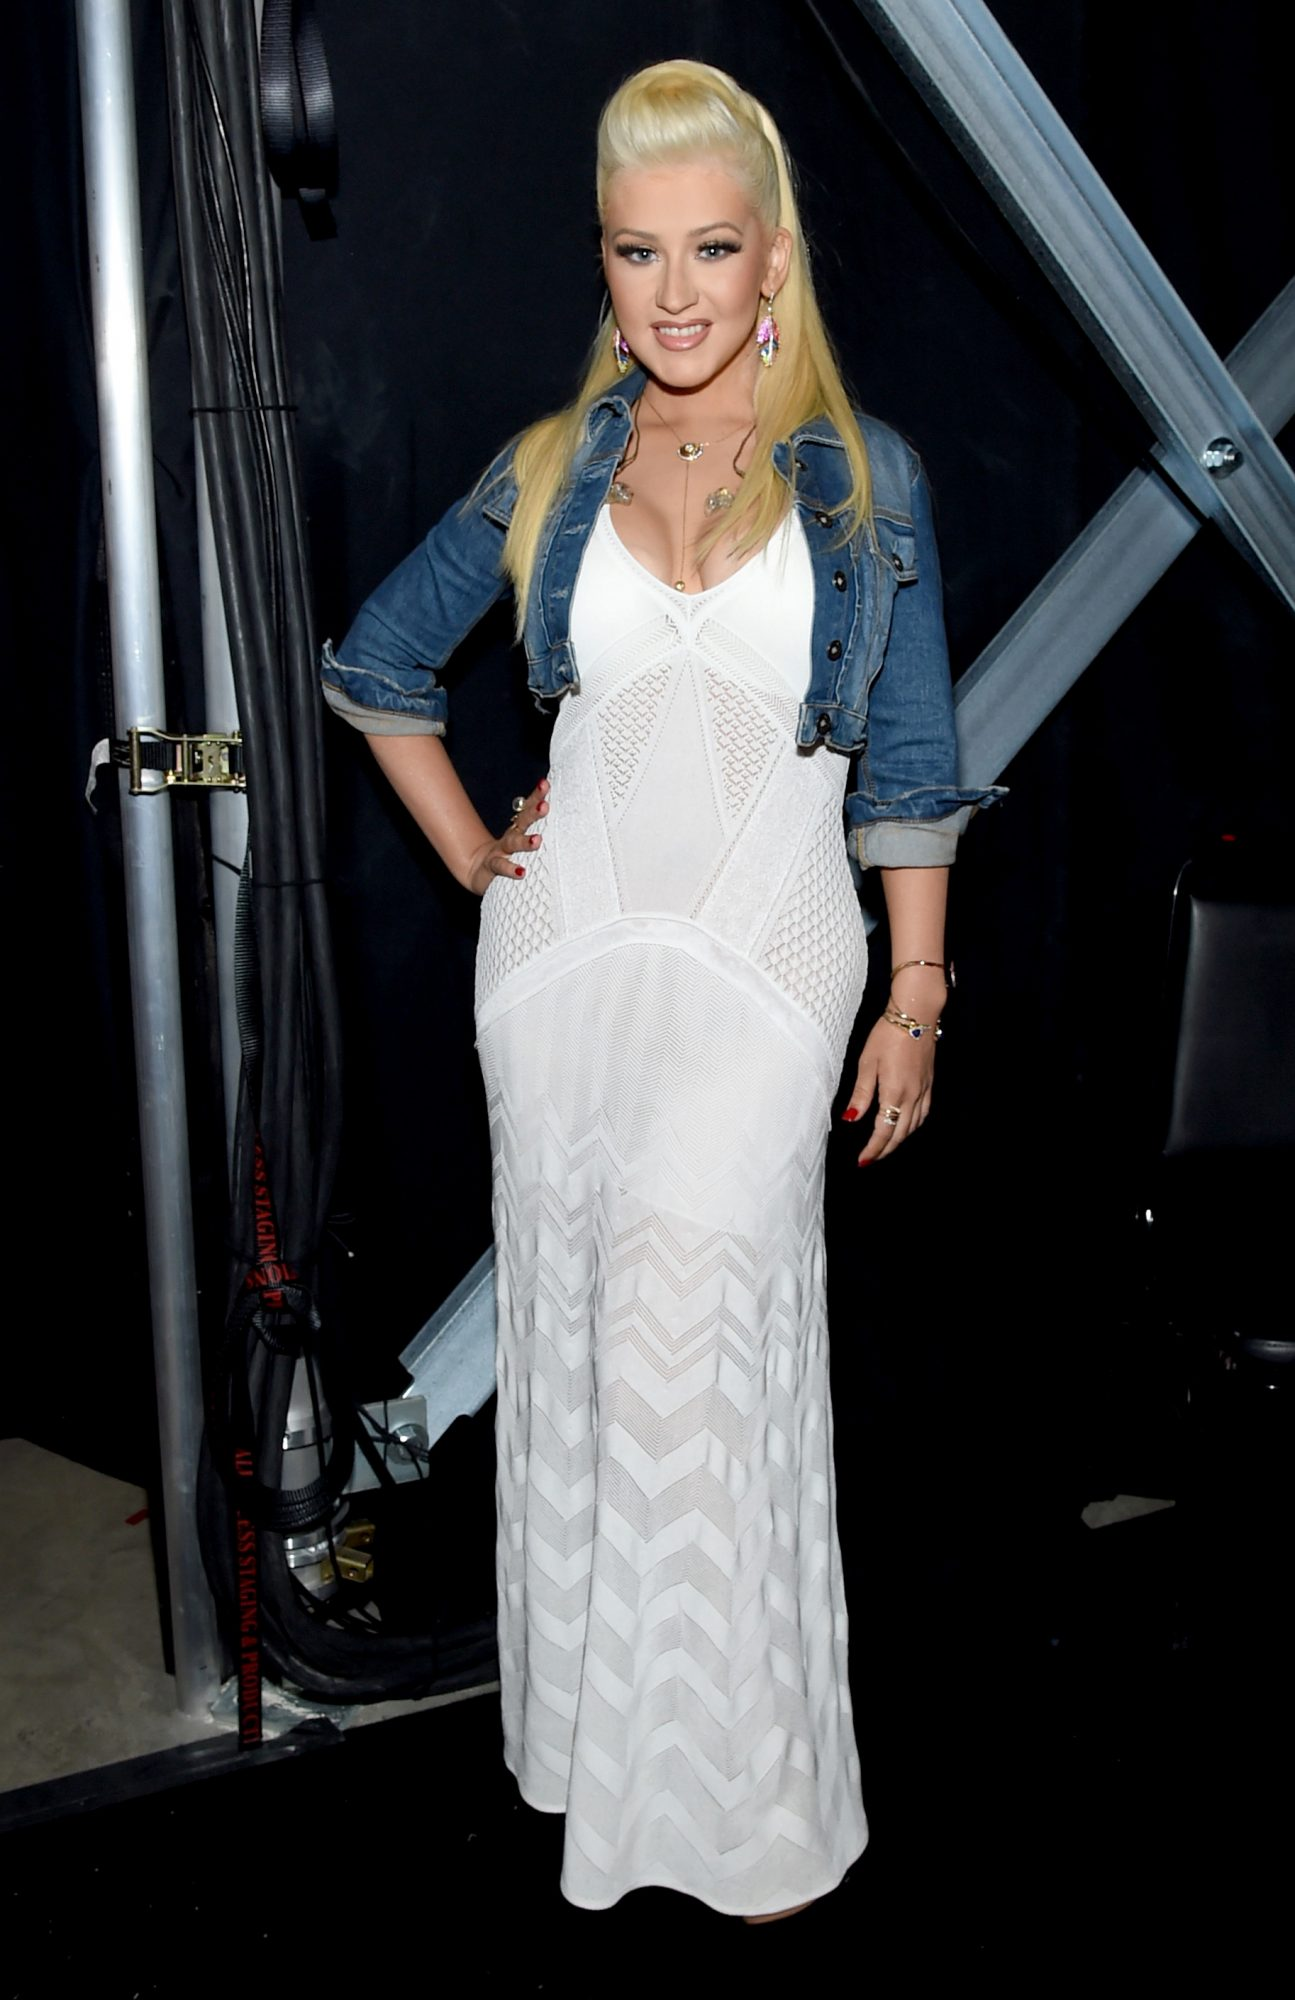 Christina Aguilera at the Academy Of Country Music Awards